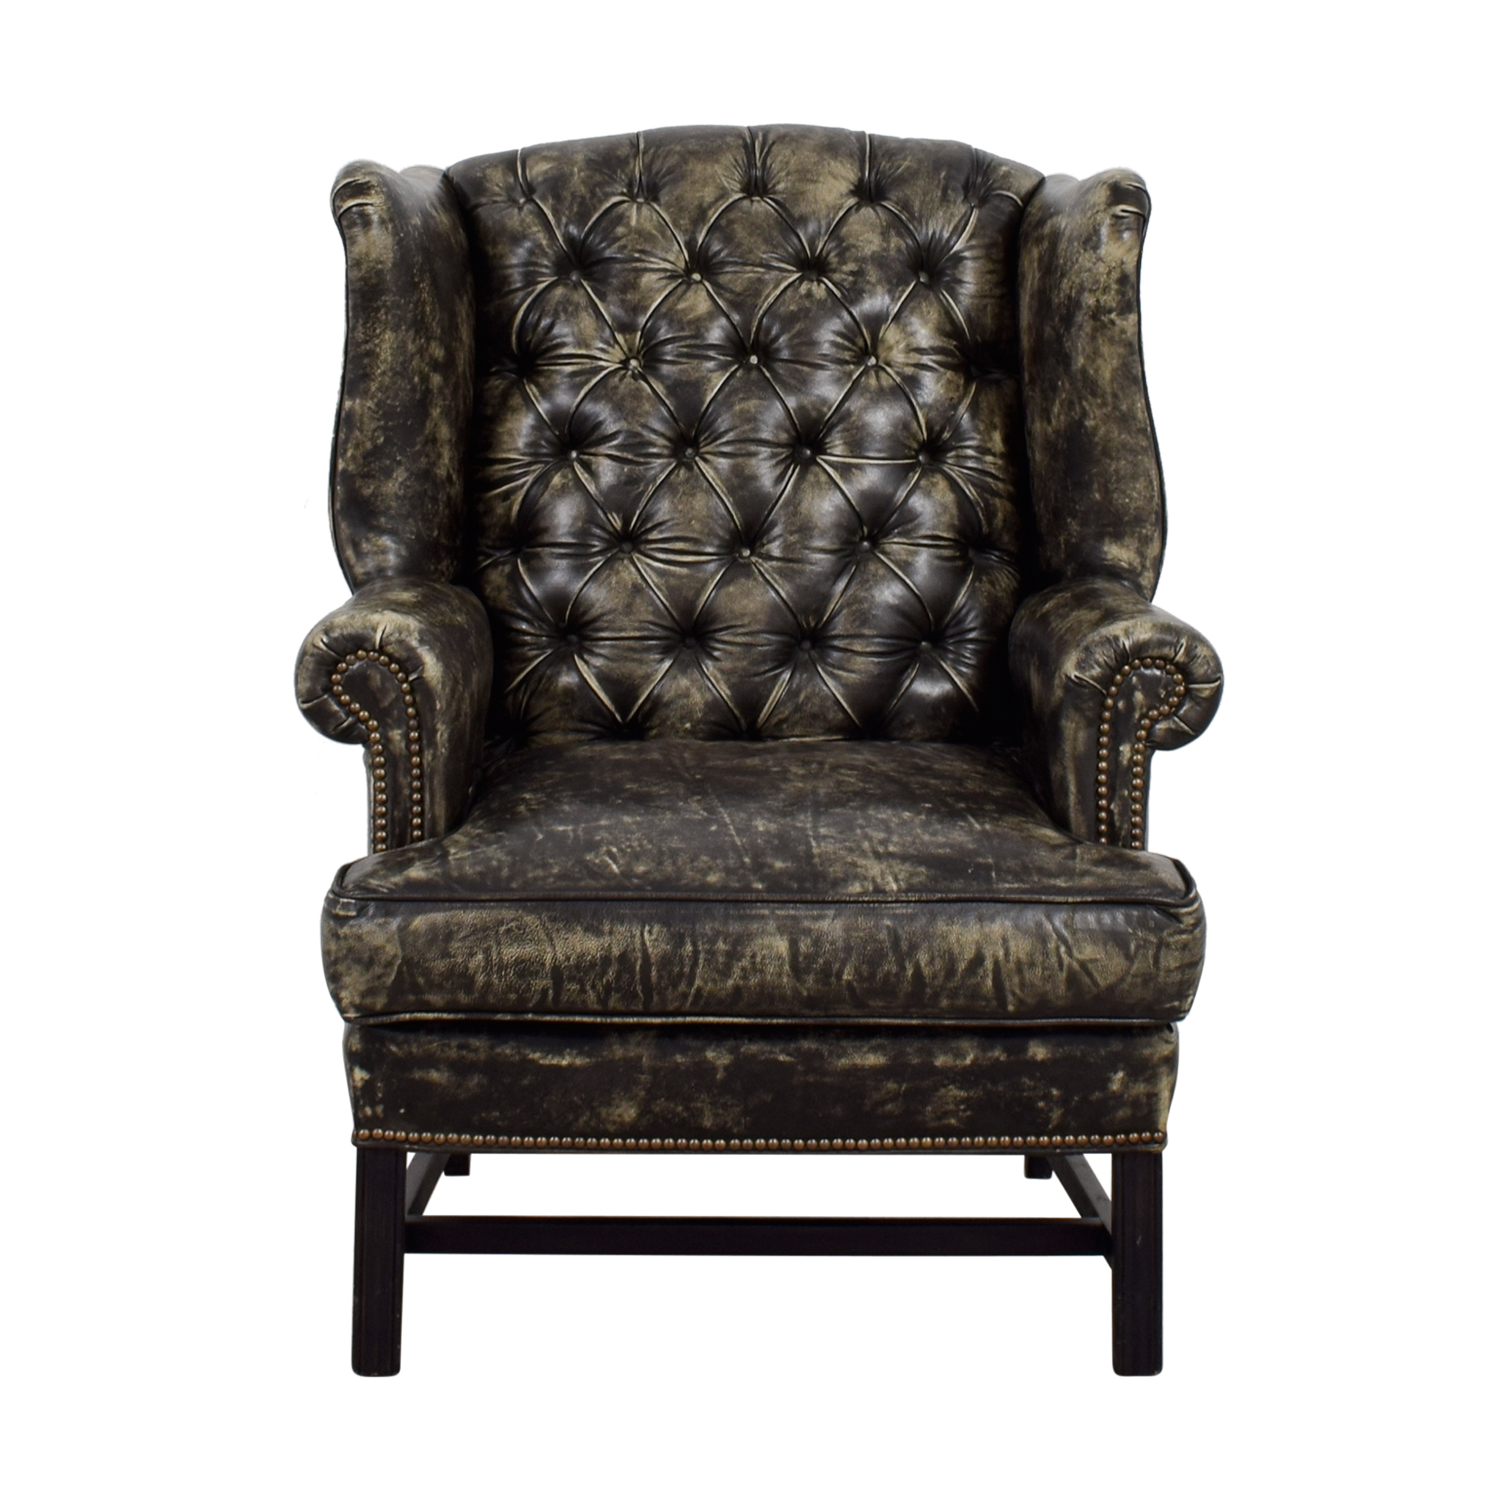 Restoration Hardware Leather Chairs 33 Off Restoration Hardware Restoration Hardware Wingback Distressed Black And Cream Leather Chair Chairs